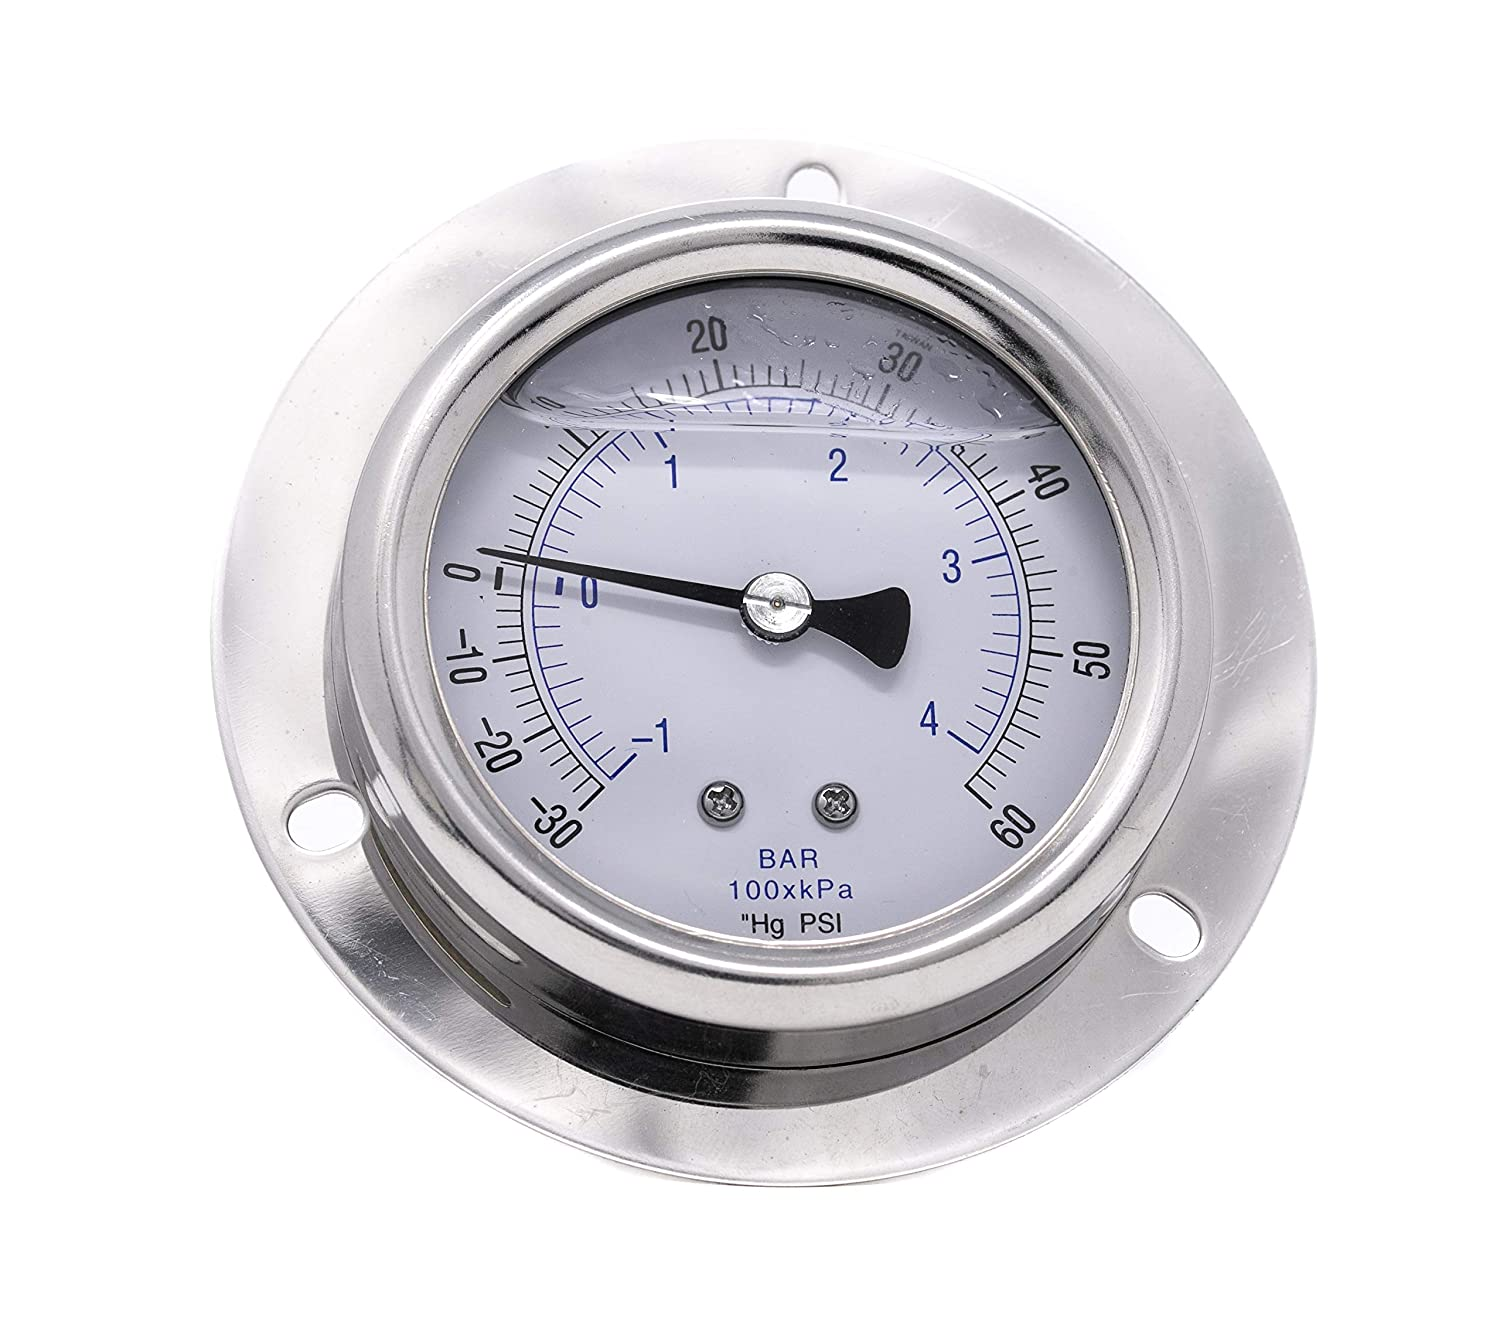 PIC Gauge 214L-254M 2.5 Dial 1//4 Male NPT Connection Size Removable Stainless Steel Bezel Brass Internals Front Flanged Panel Mount Glycerine Filled Pressure Gauge with a Stainless Steel Case 0//1000 psi Range and Glass Lens